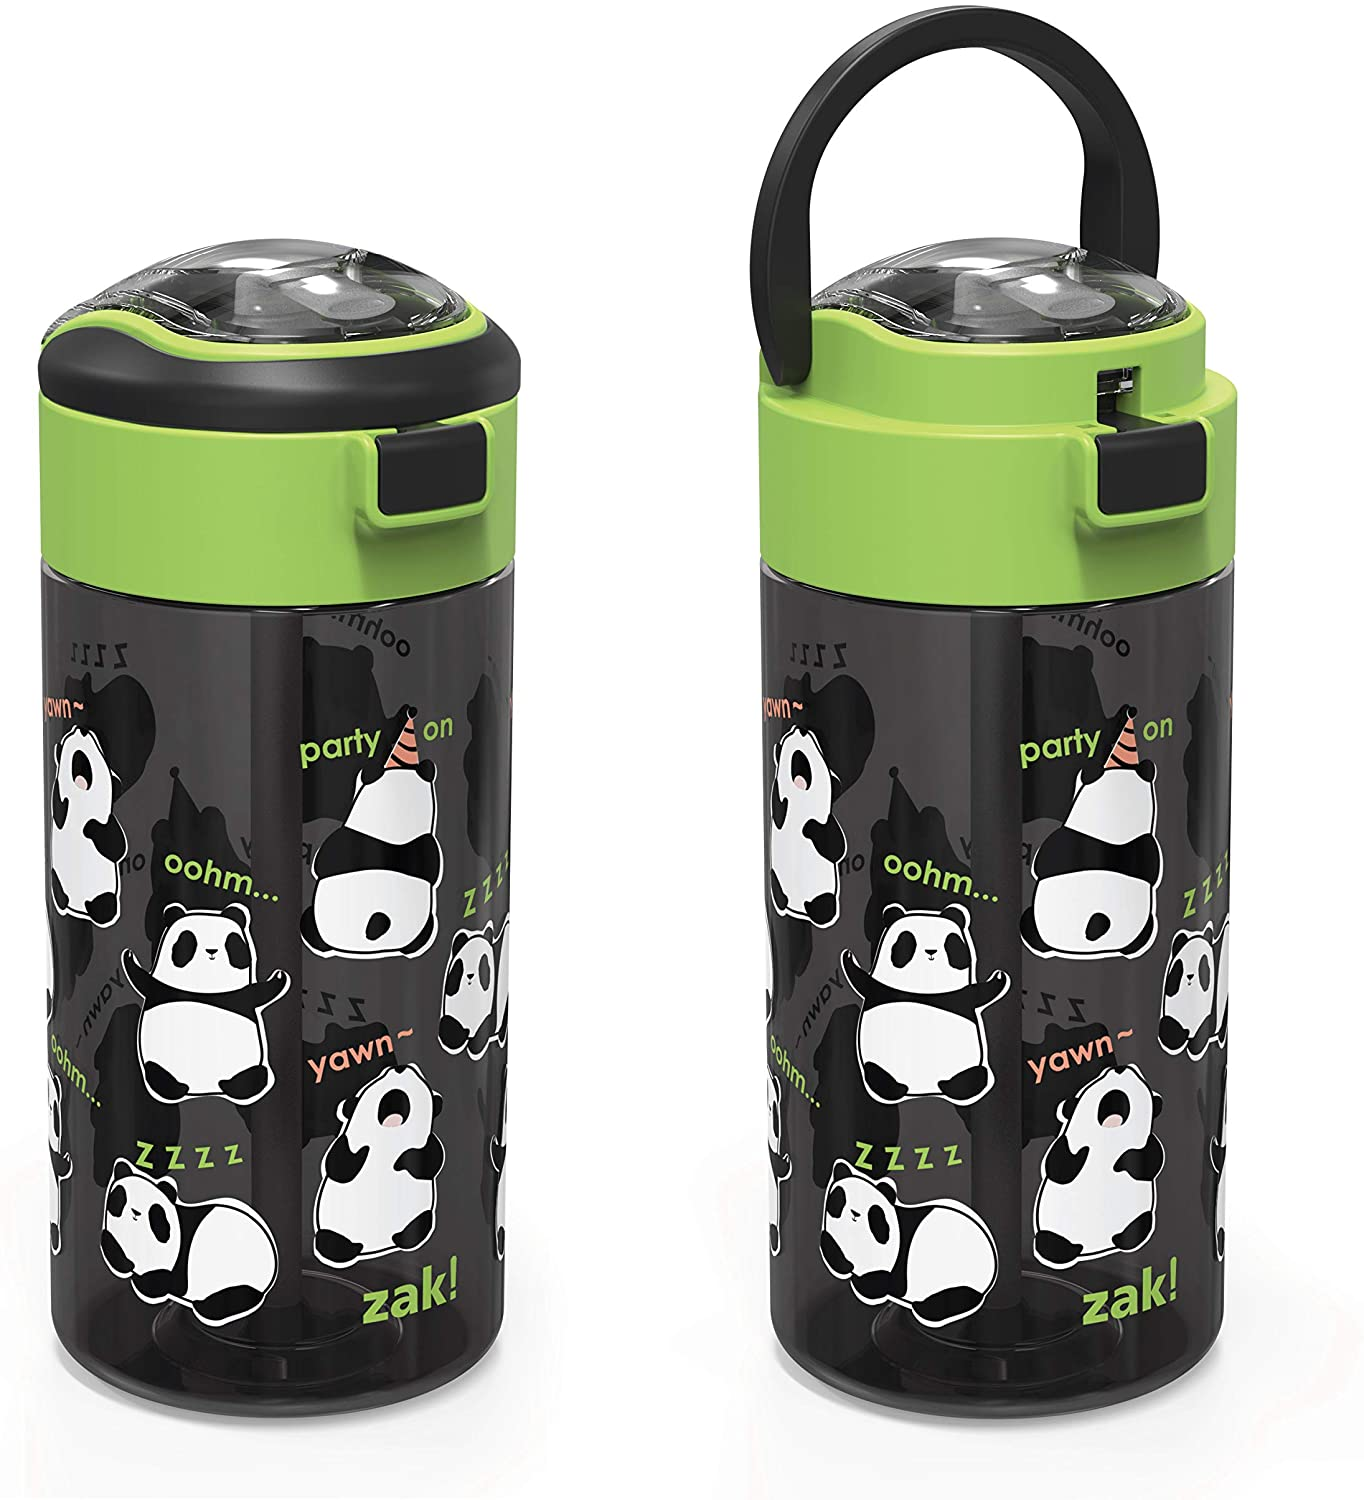 Zak Designs Genesis Durable Plastic Water Bottle with Interchangeable Lid and Built-In Carry Handle, Leak-Proof Design is Perfect for Outdoor Sports (18oz, Panda, BPA Free)